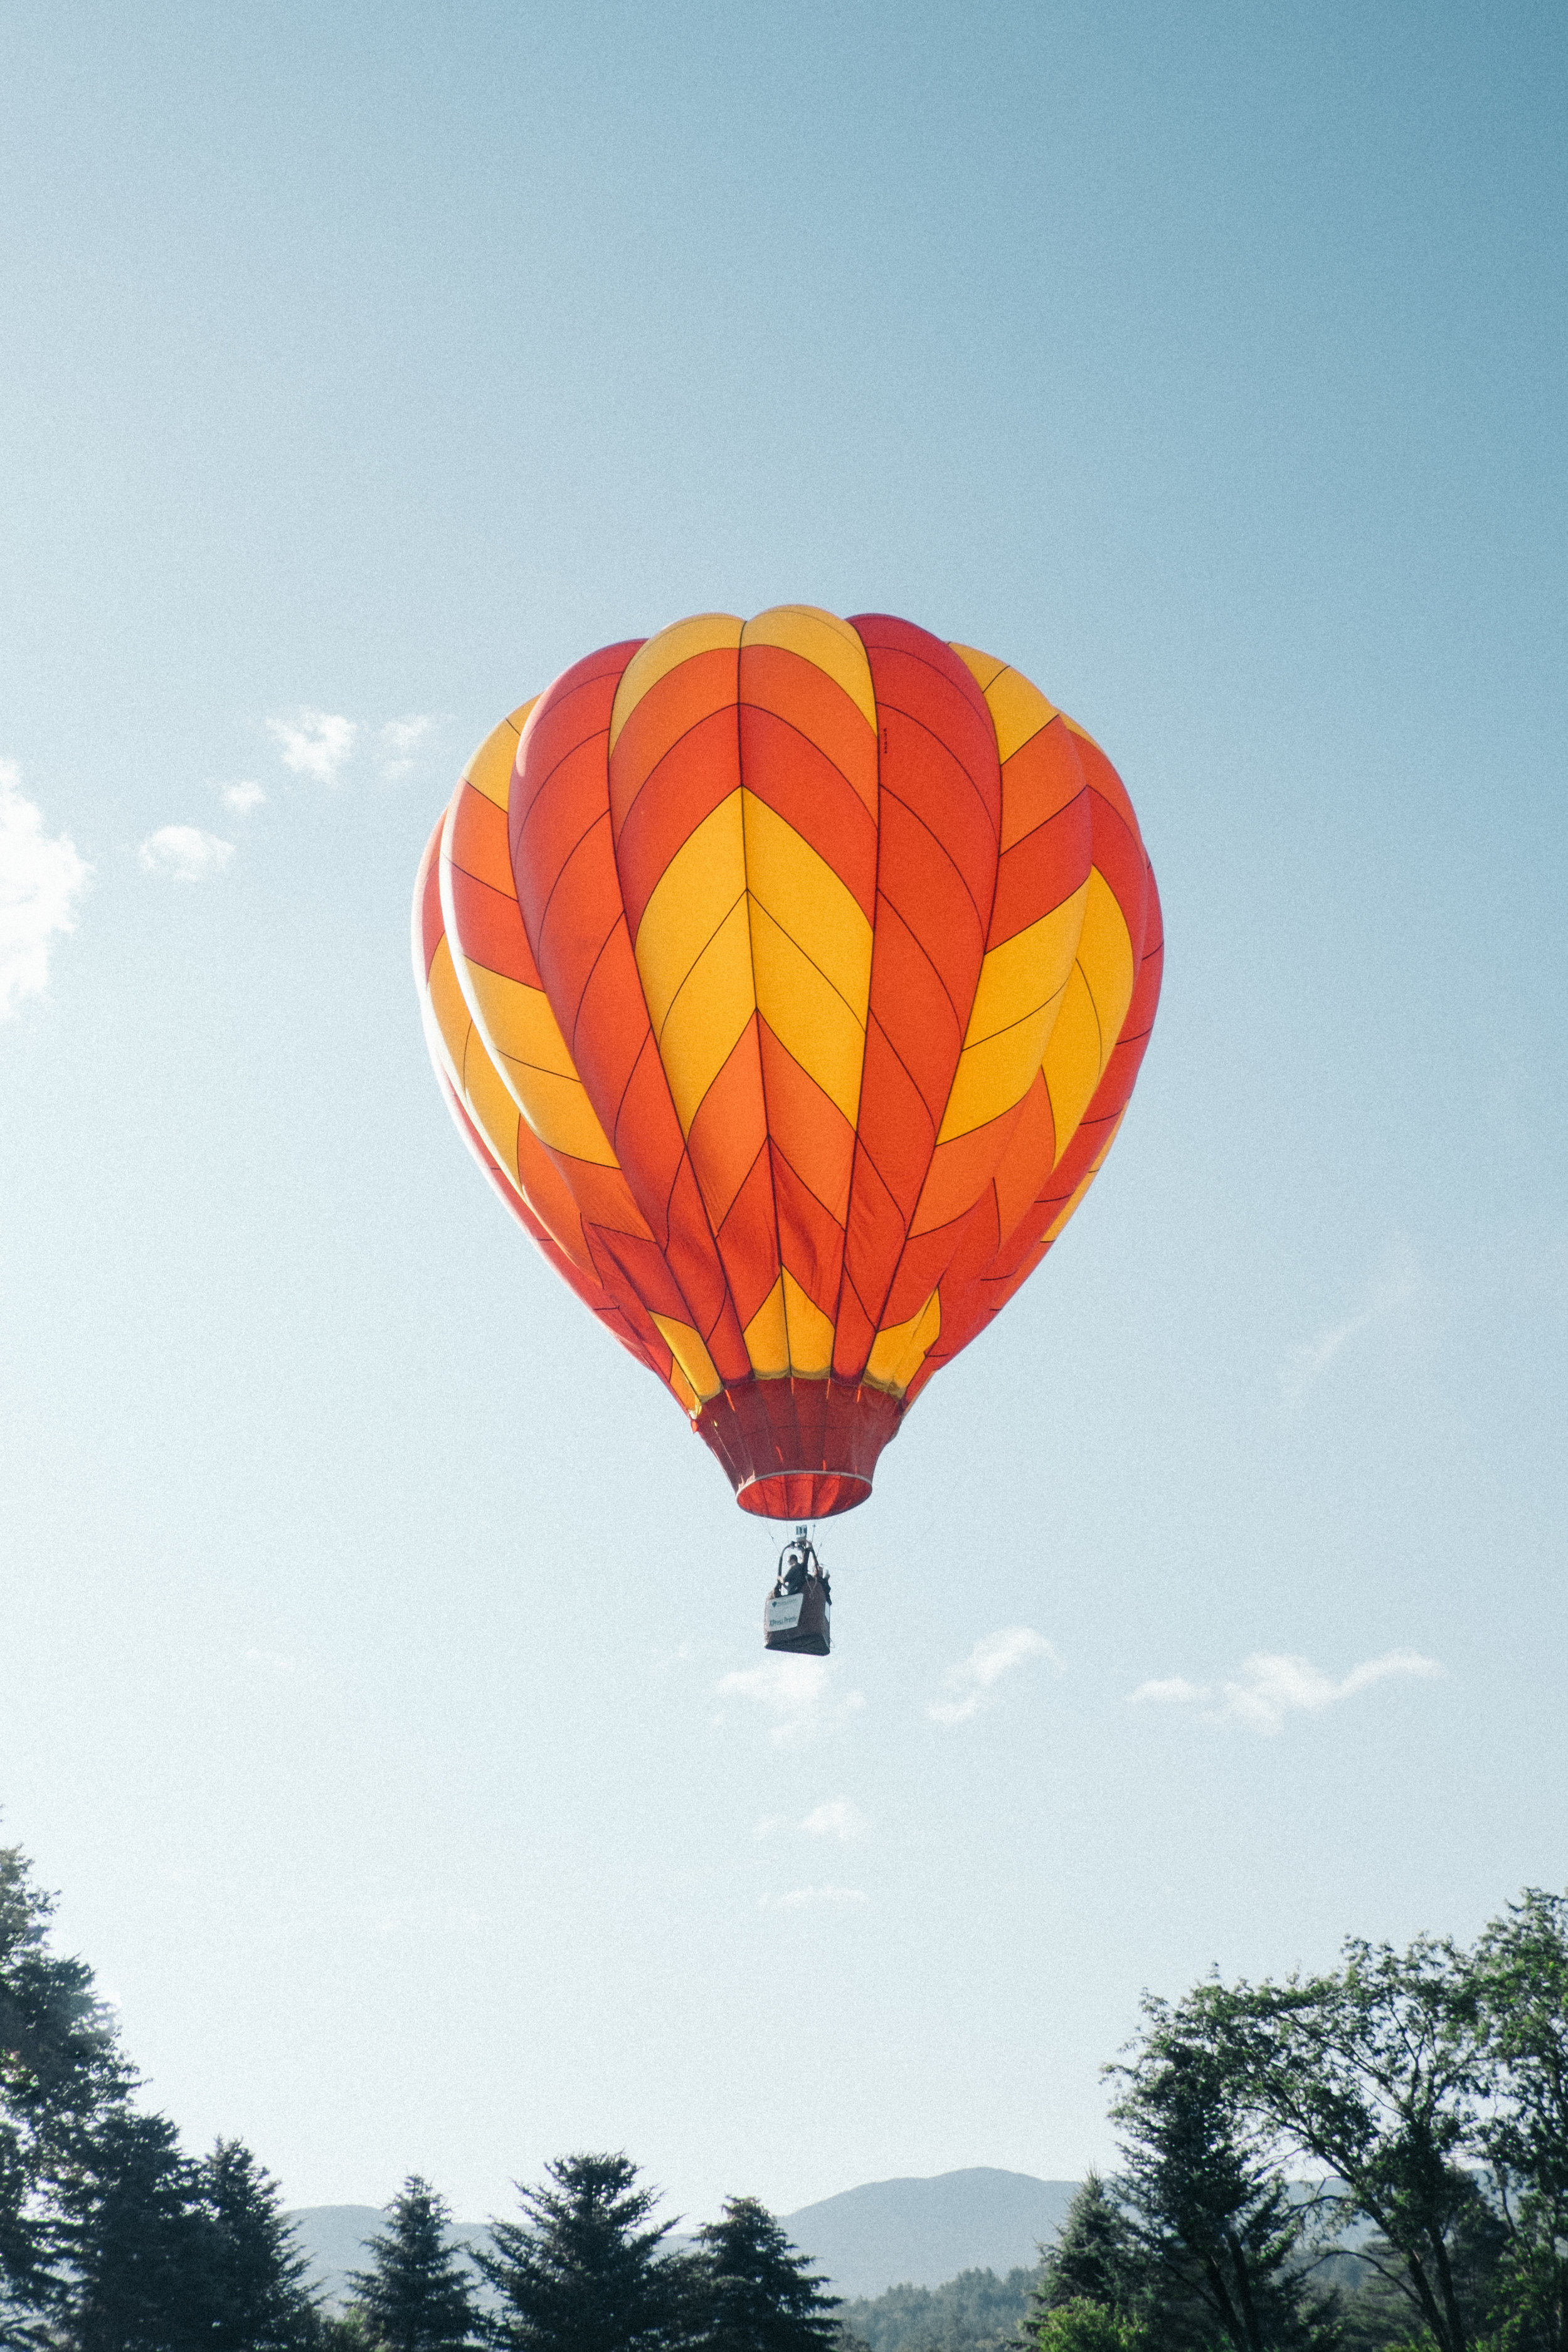 Stowe_Hot_Air_Balloon_Festival18.jpg